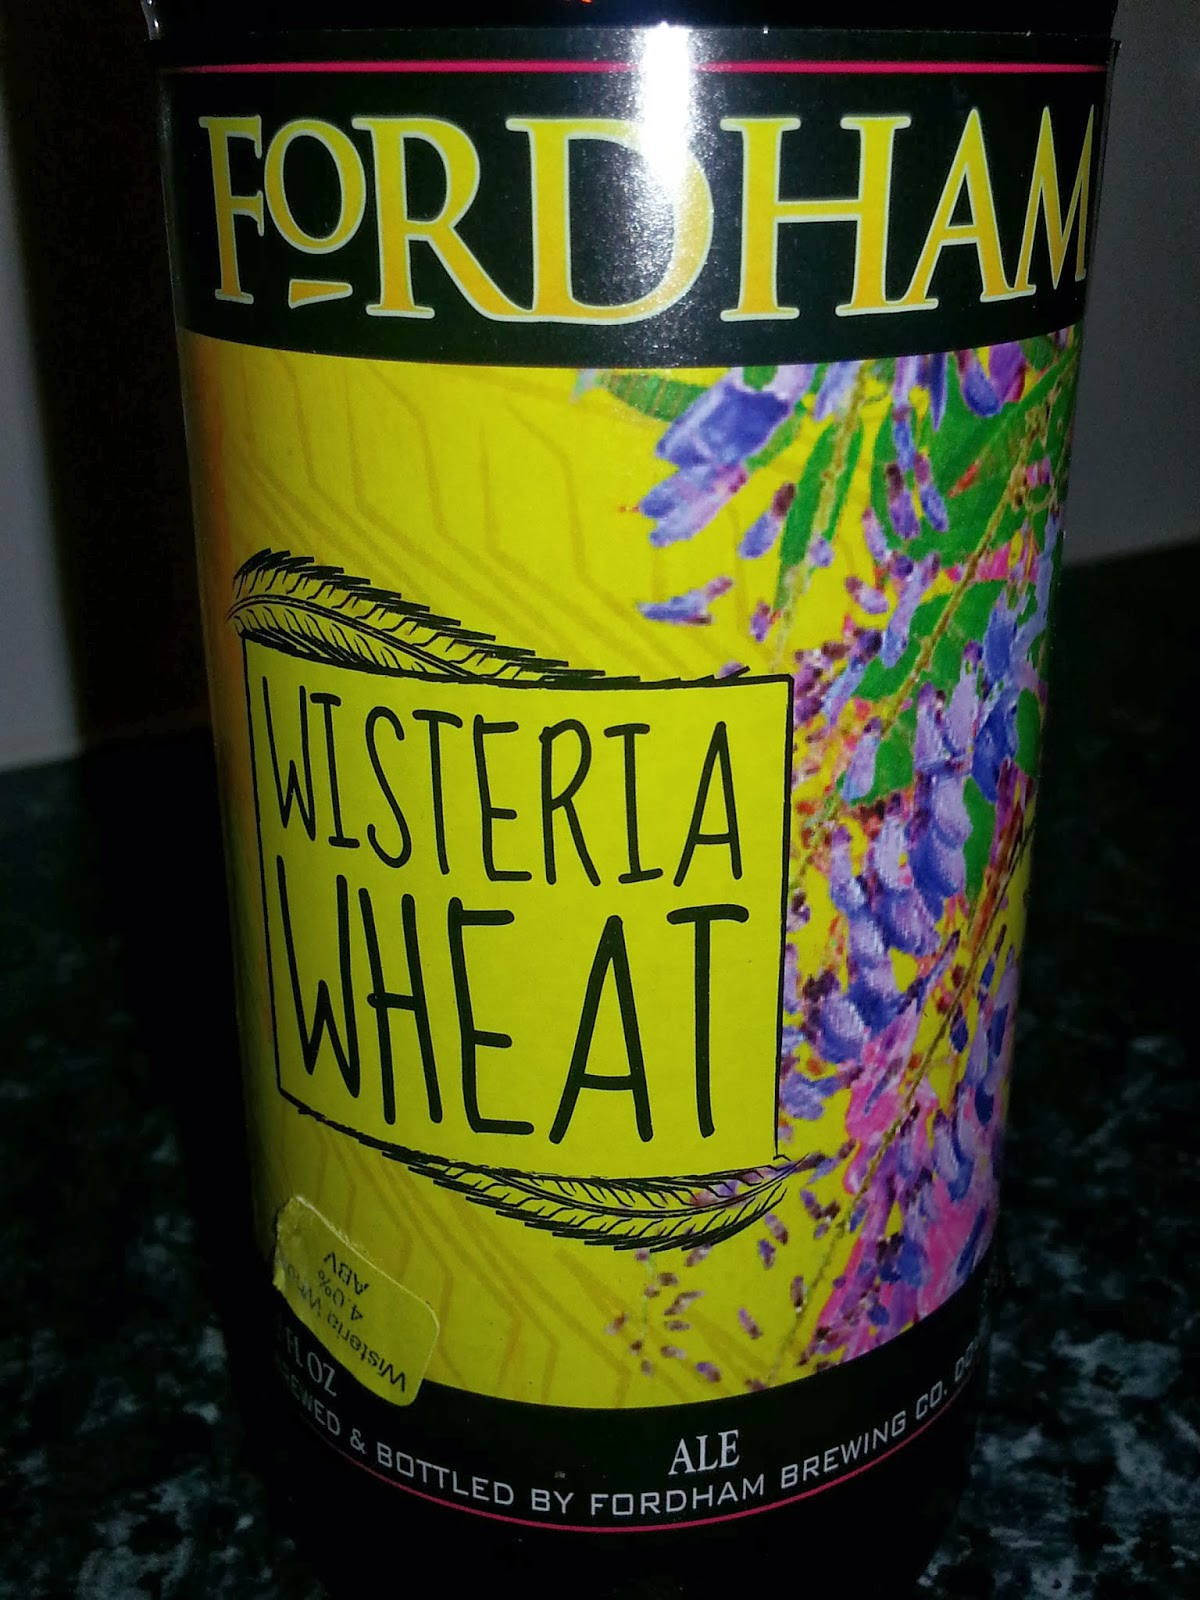 Wisteria Wheat